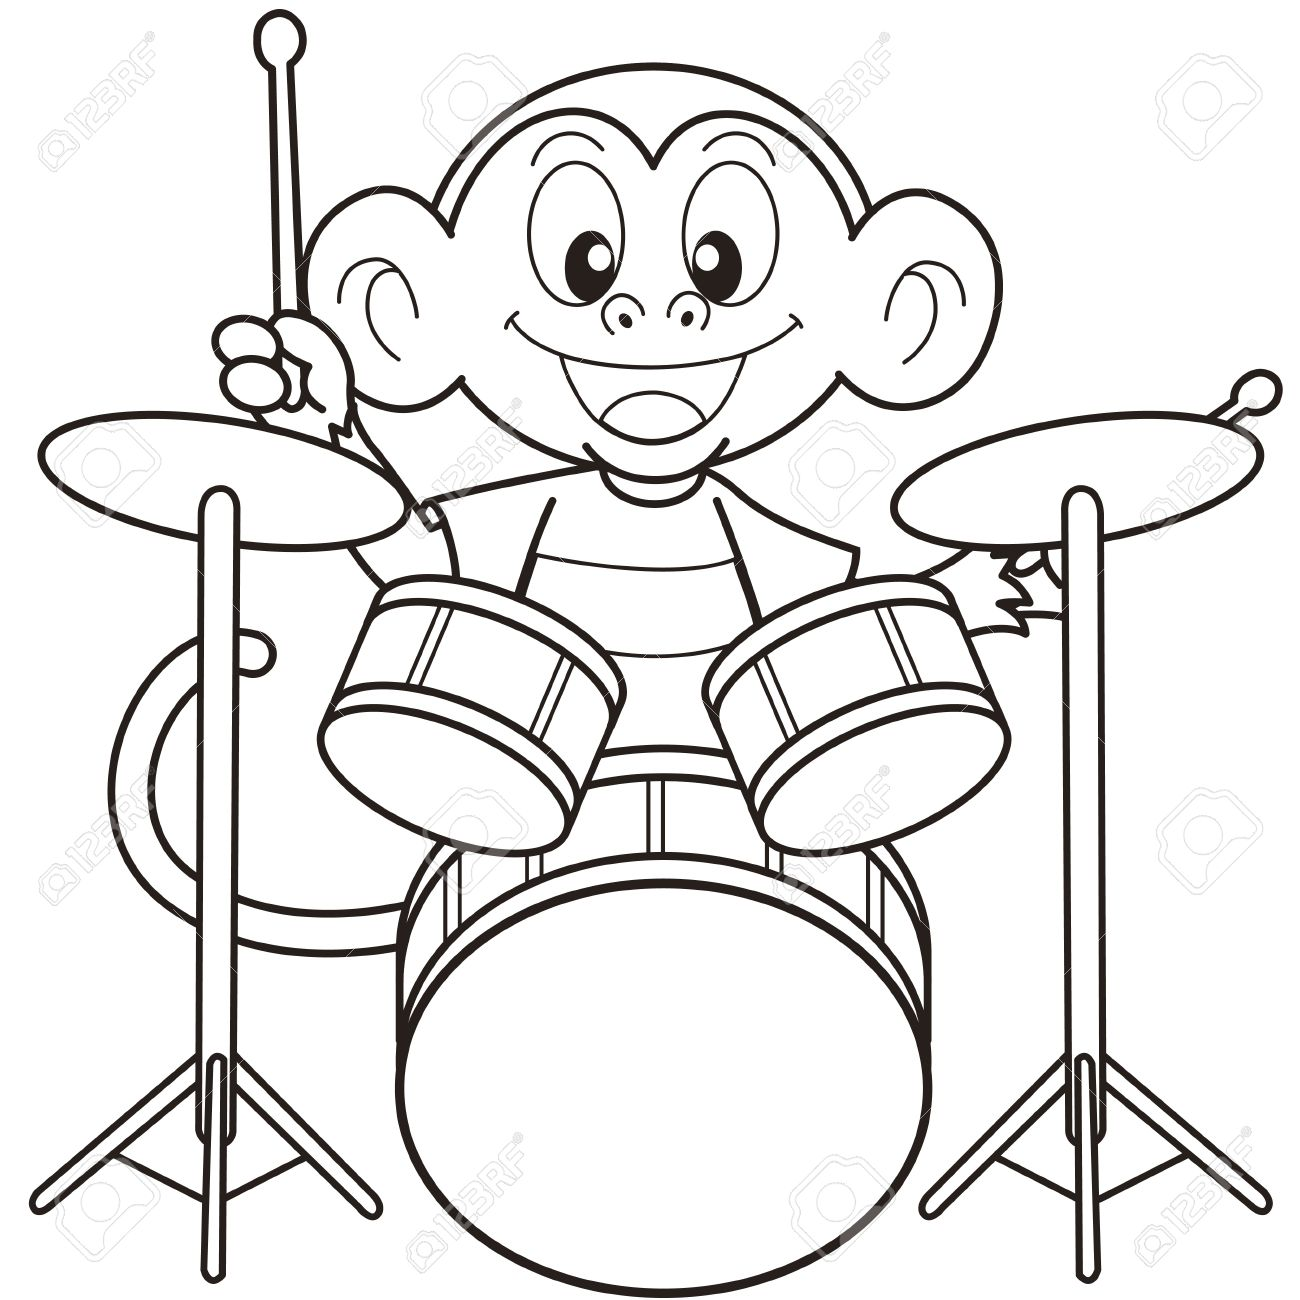 music monkey cartoon monkey playing drums black and white illustration